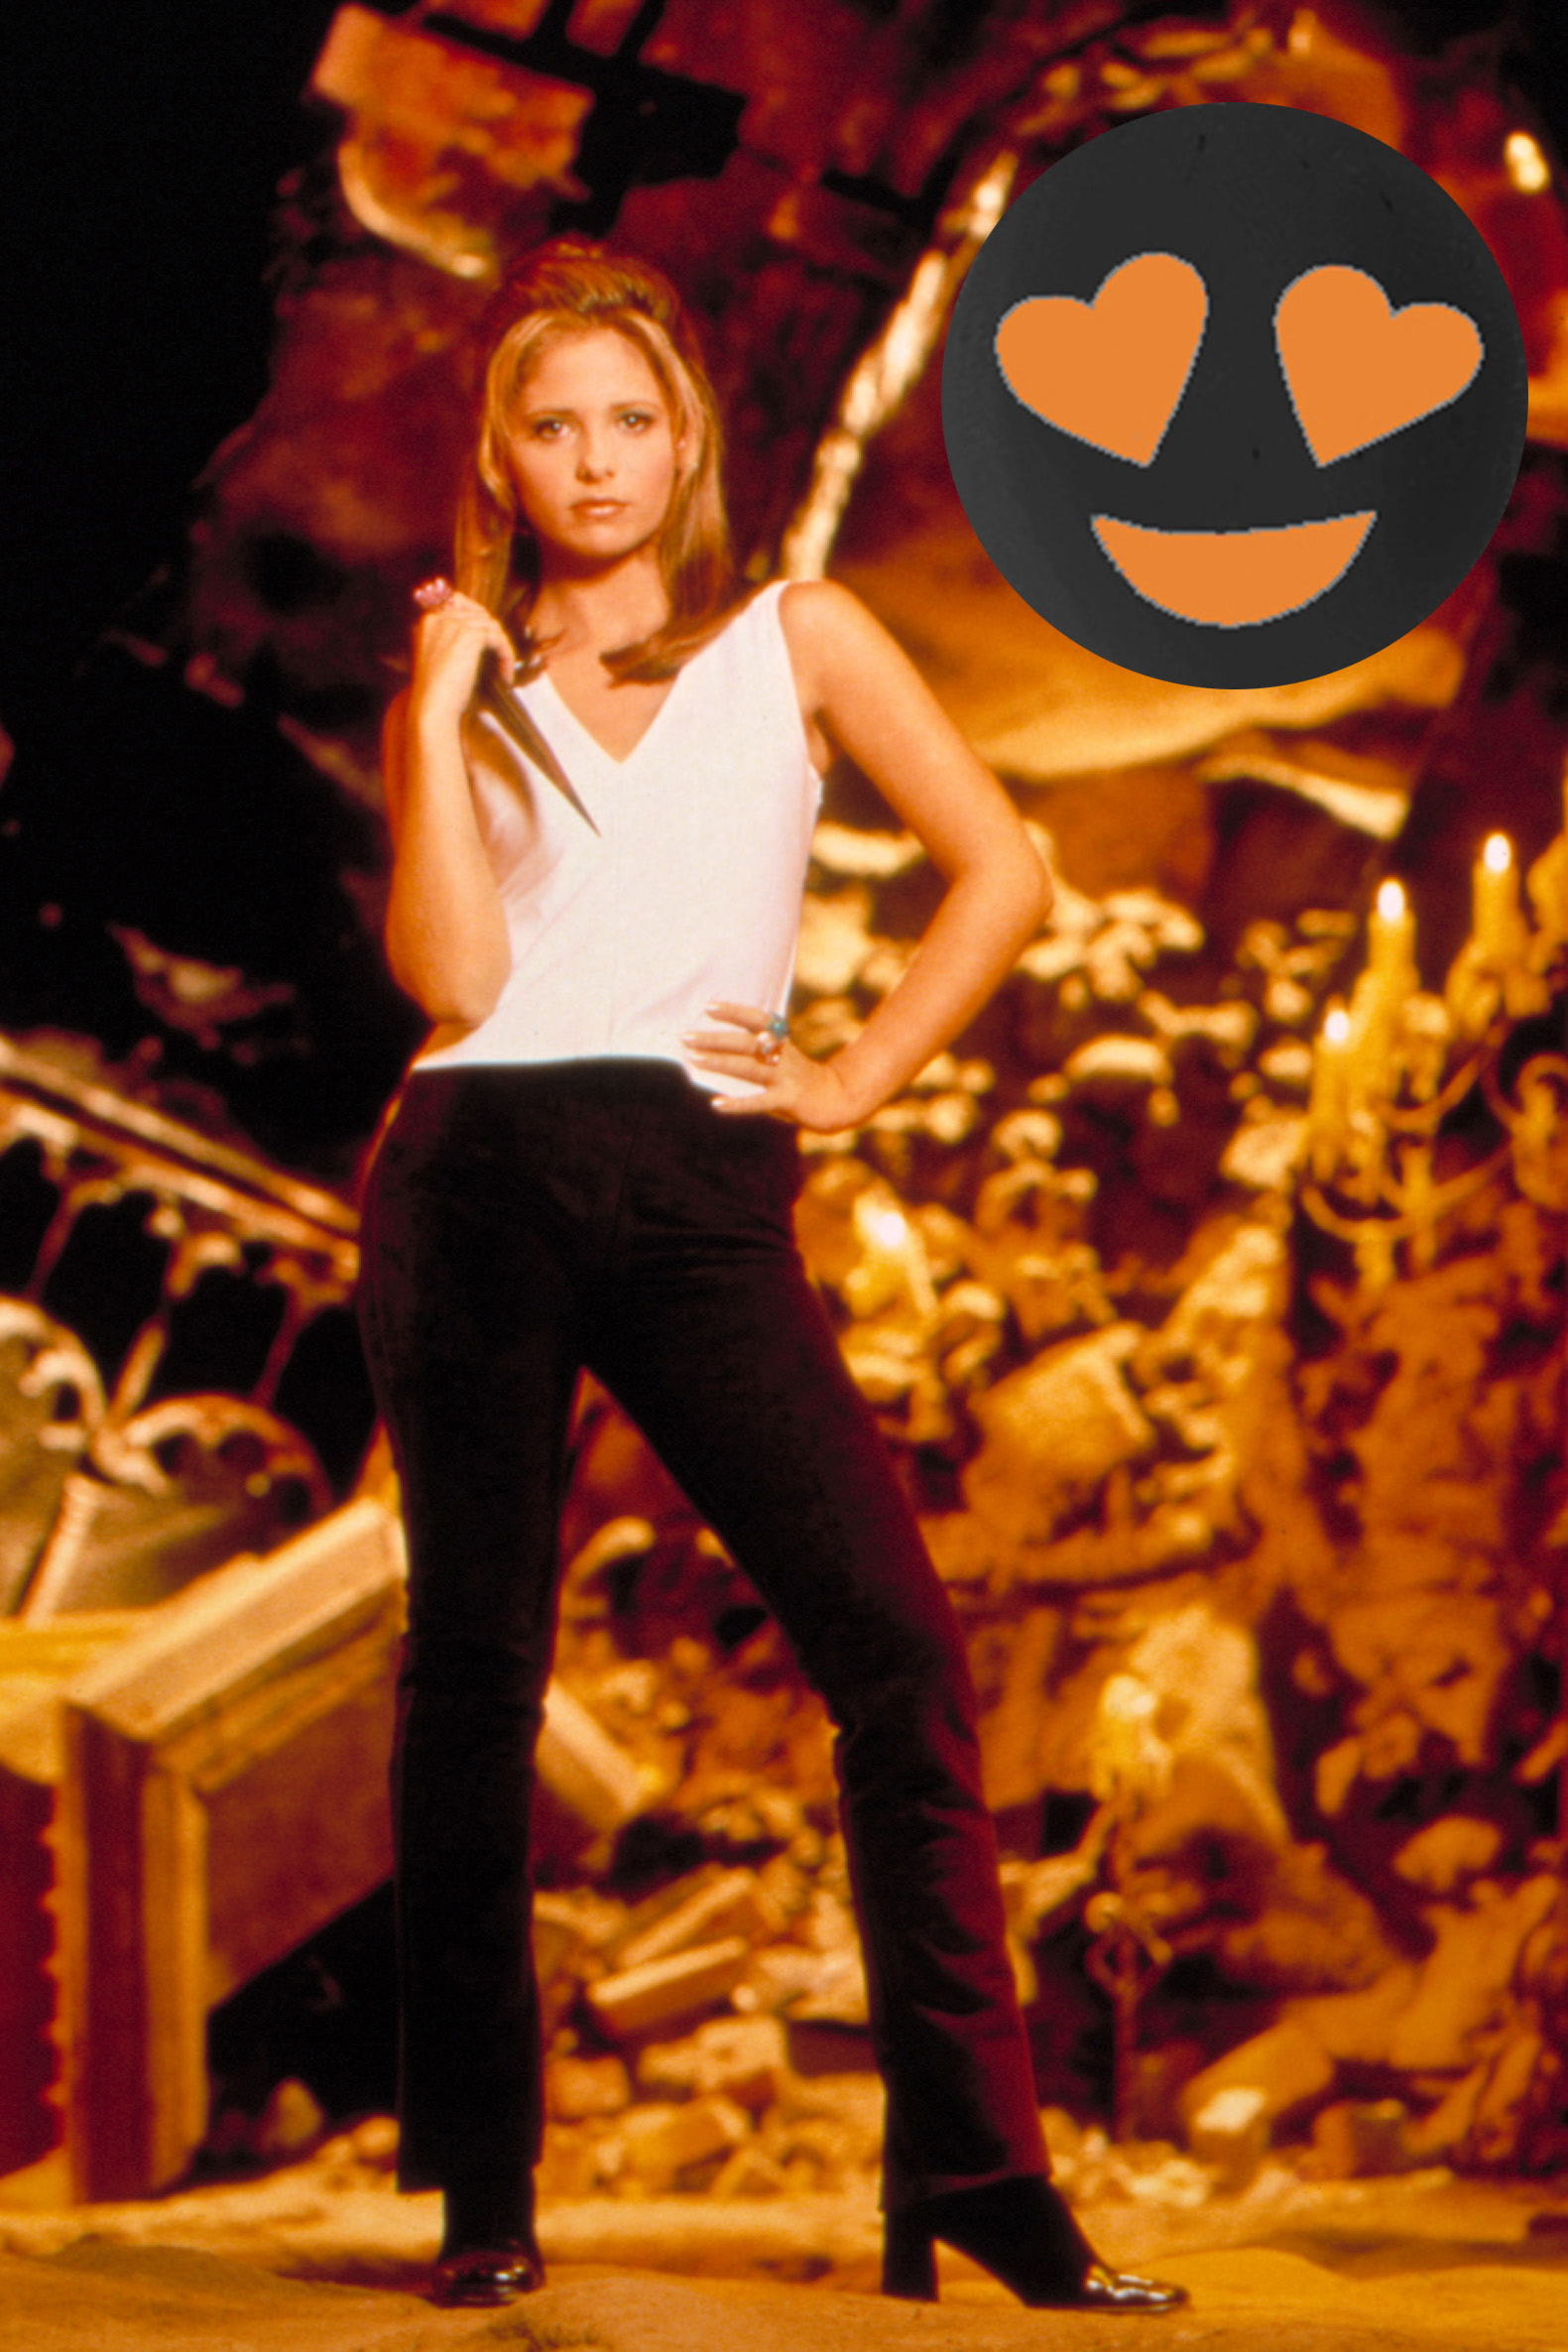 BUFFY THE VAMPIRE SLAYER, Sarah Michelle Gellar, 1997-2003, Season 1, 1997, TM and Copyright © 20th Century Fox Film Corp. All rights reserved. Courtesy: Everett Collection, 1997